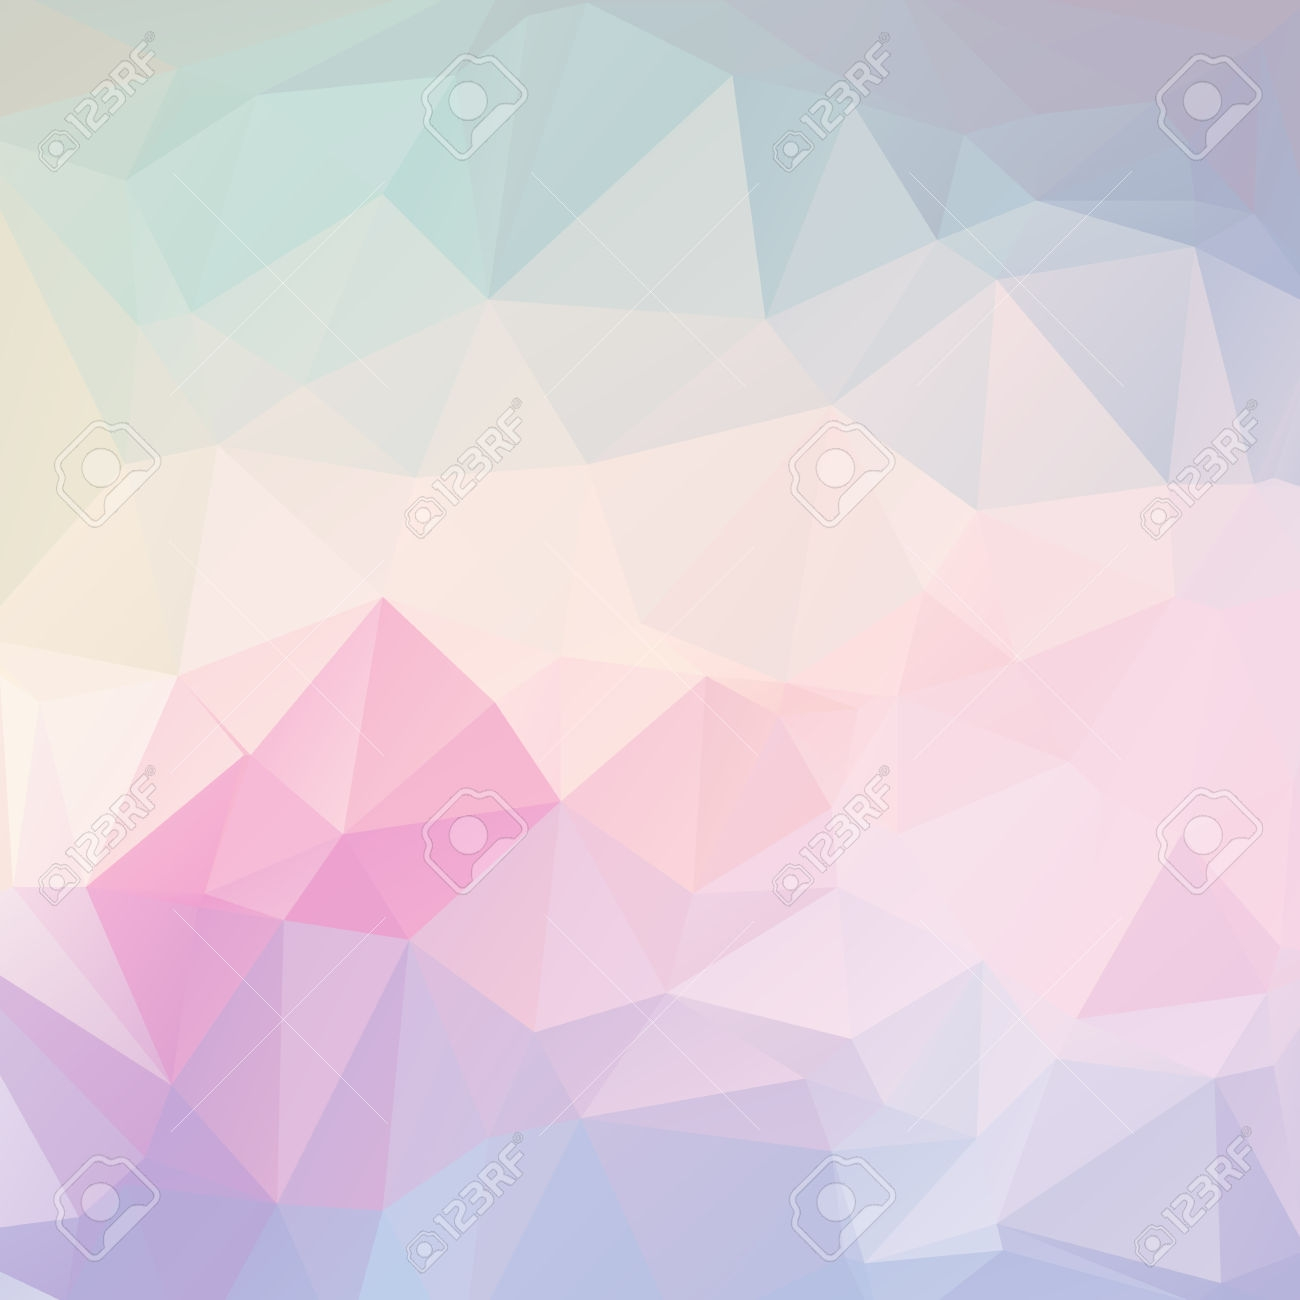 Free Download Home Design Pastel Colors Background